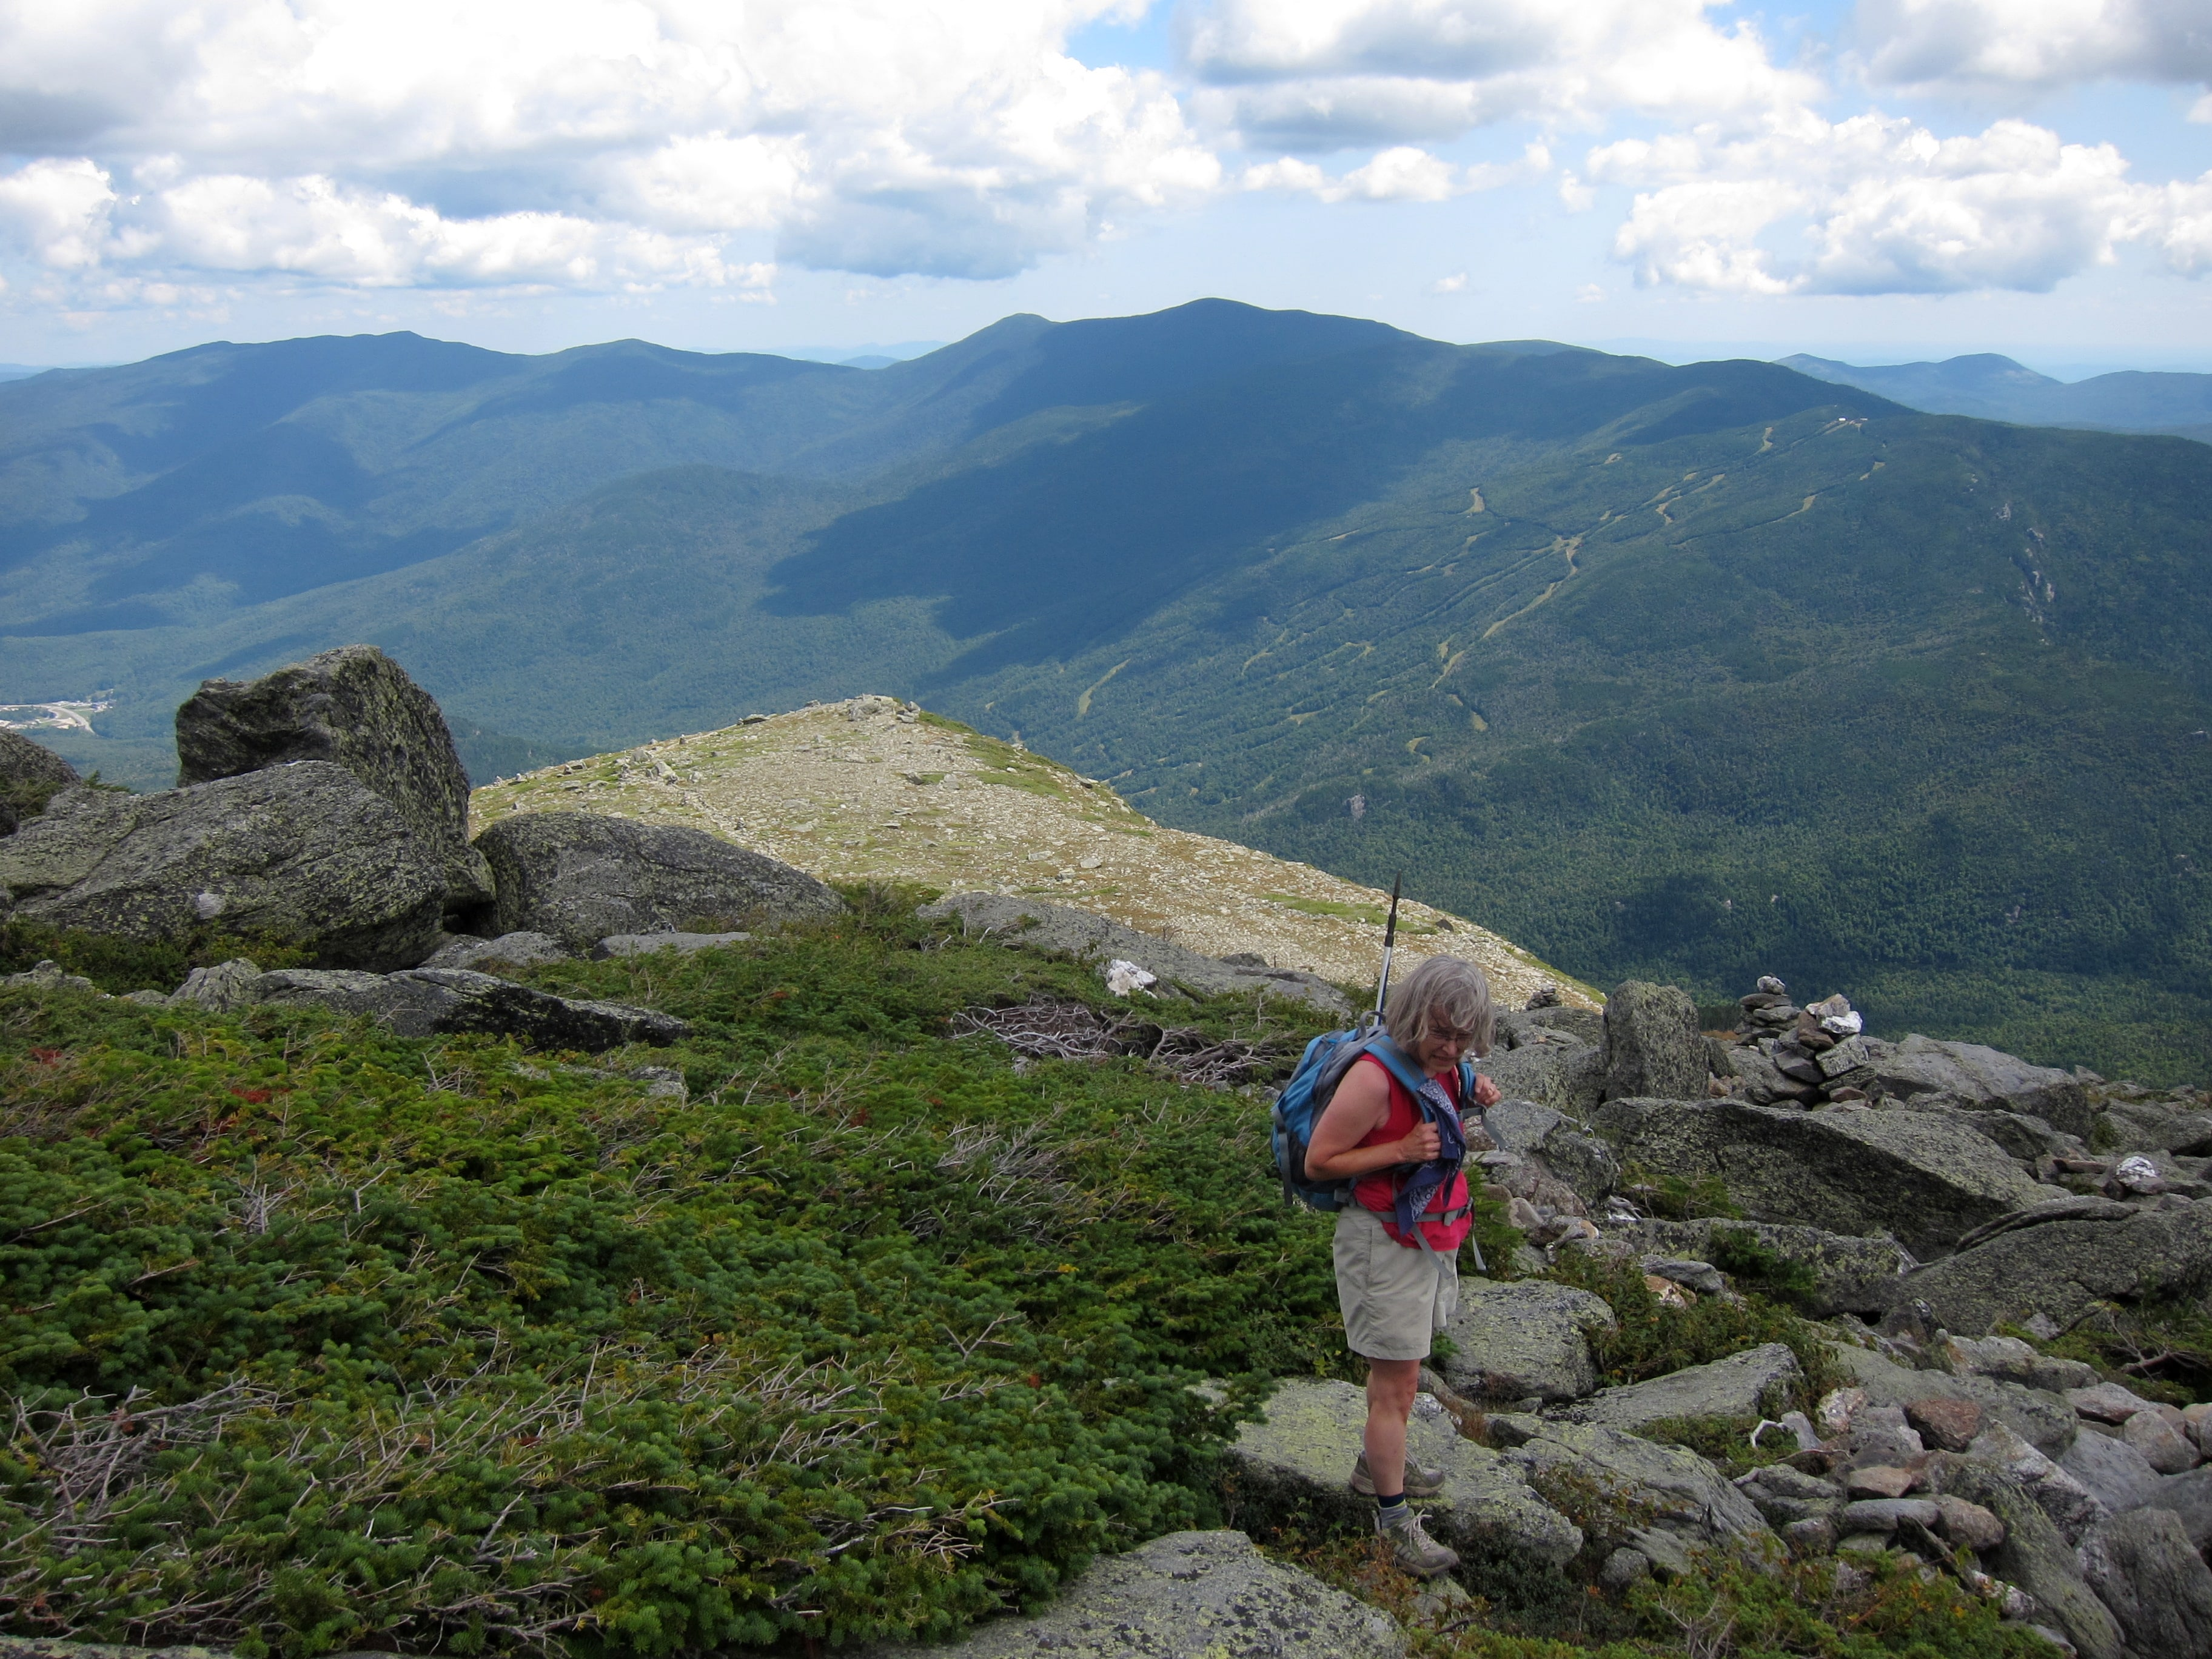 A hiker on Boott Spur, Mount Washington. Wildcat ski area in the background.